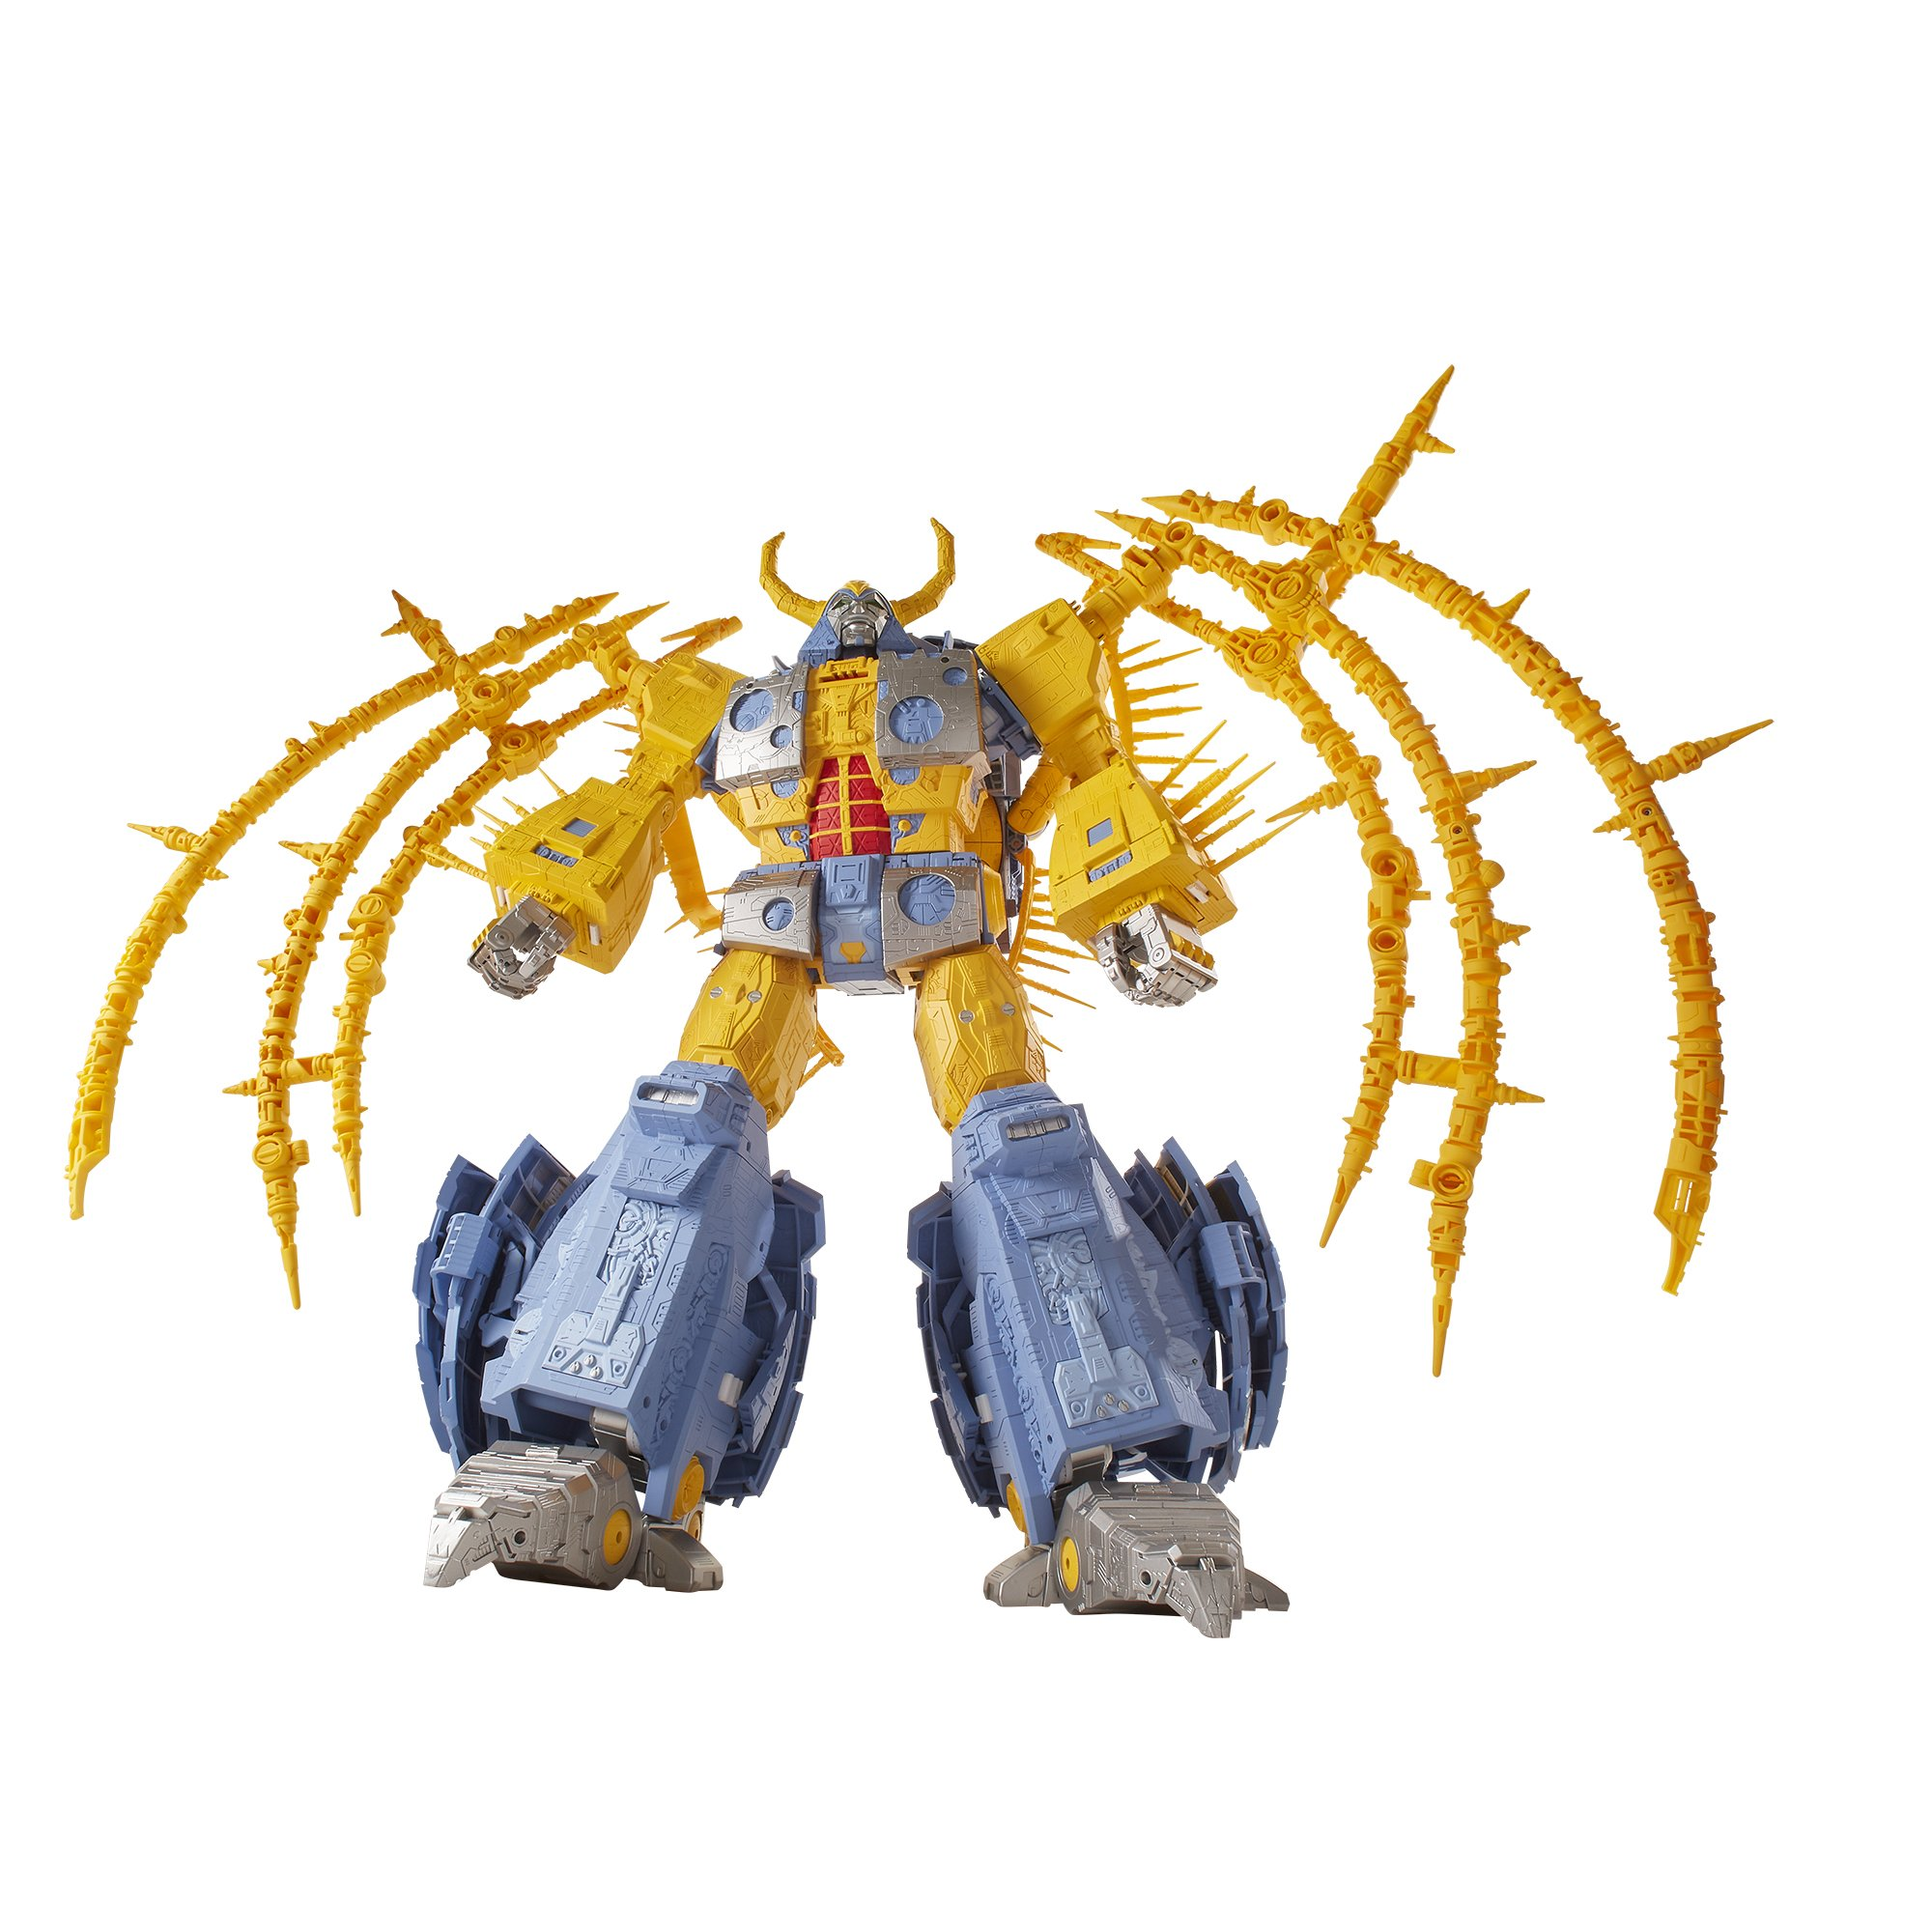 Hasbro is trying to crowdfund this massive, $574.99 Transformer